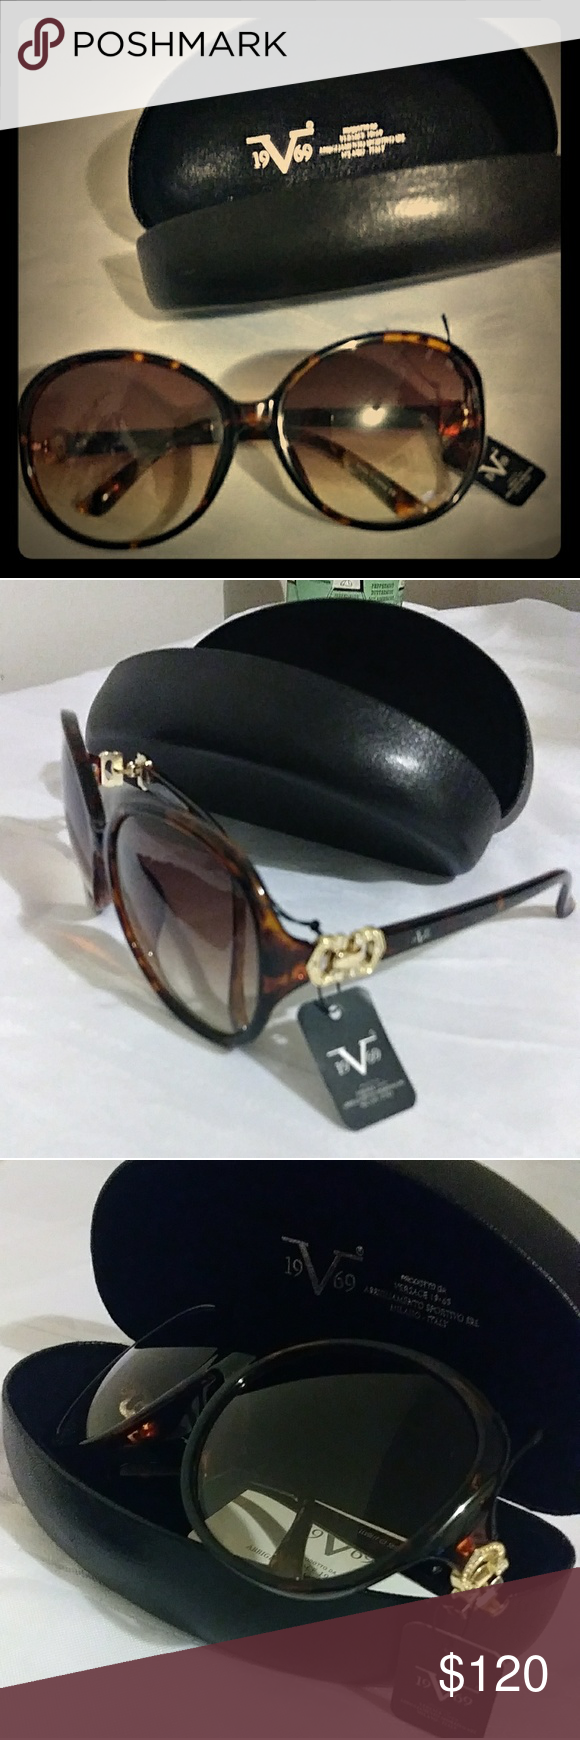 4eeaecf68133 I just added this listing on Poshmark  Versace sunglasses.  shopmycloset   poshmark  fashion  shopping  style  forsale  Versace  Accessories